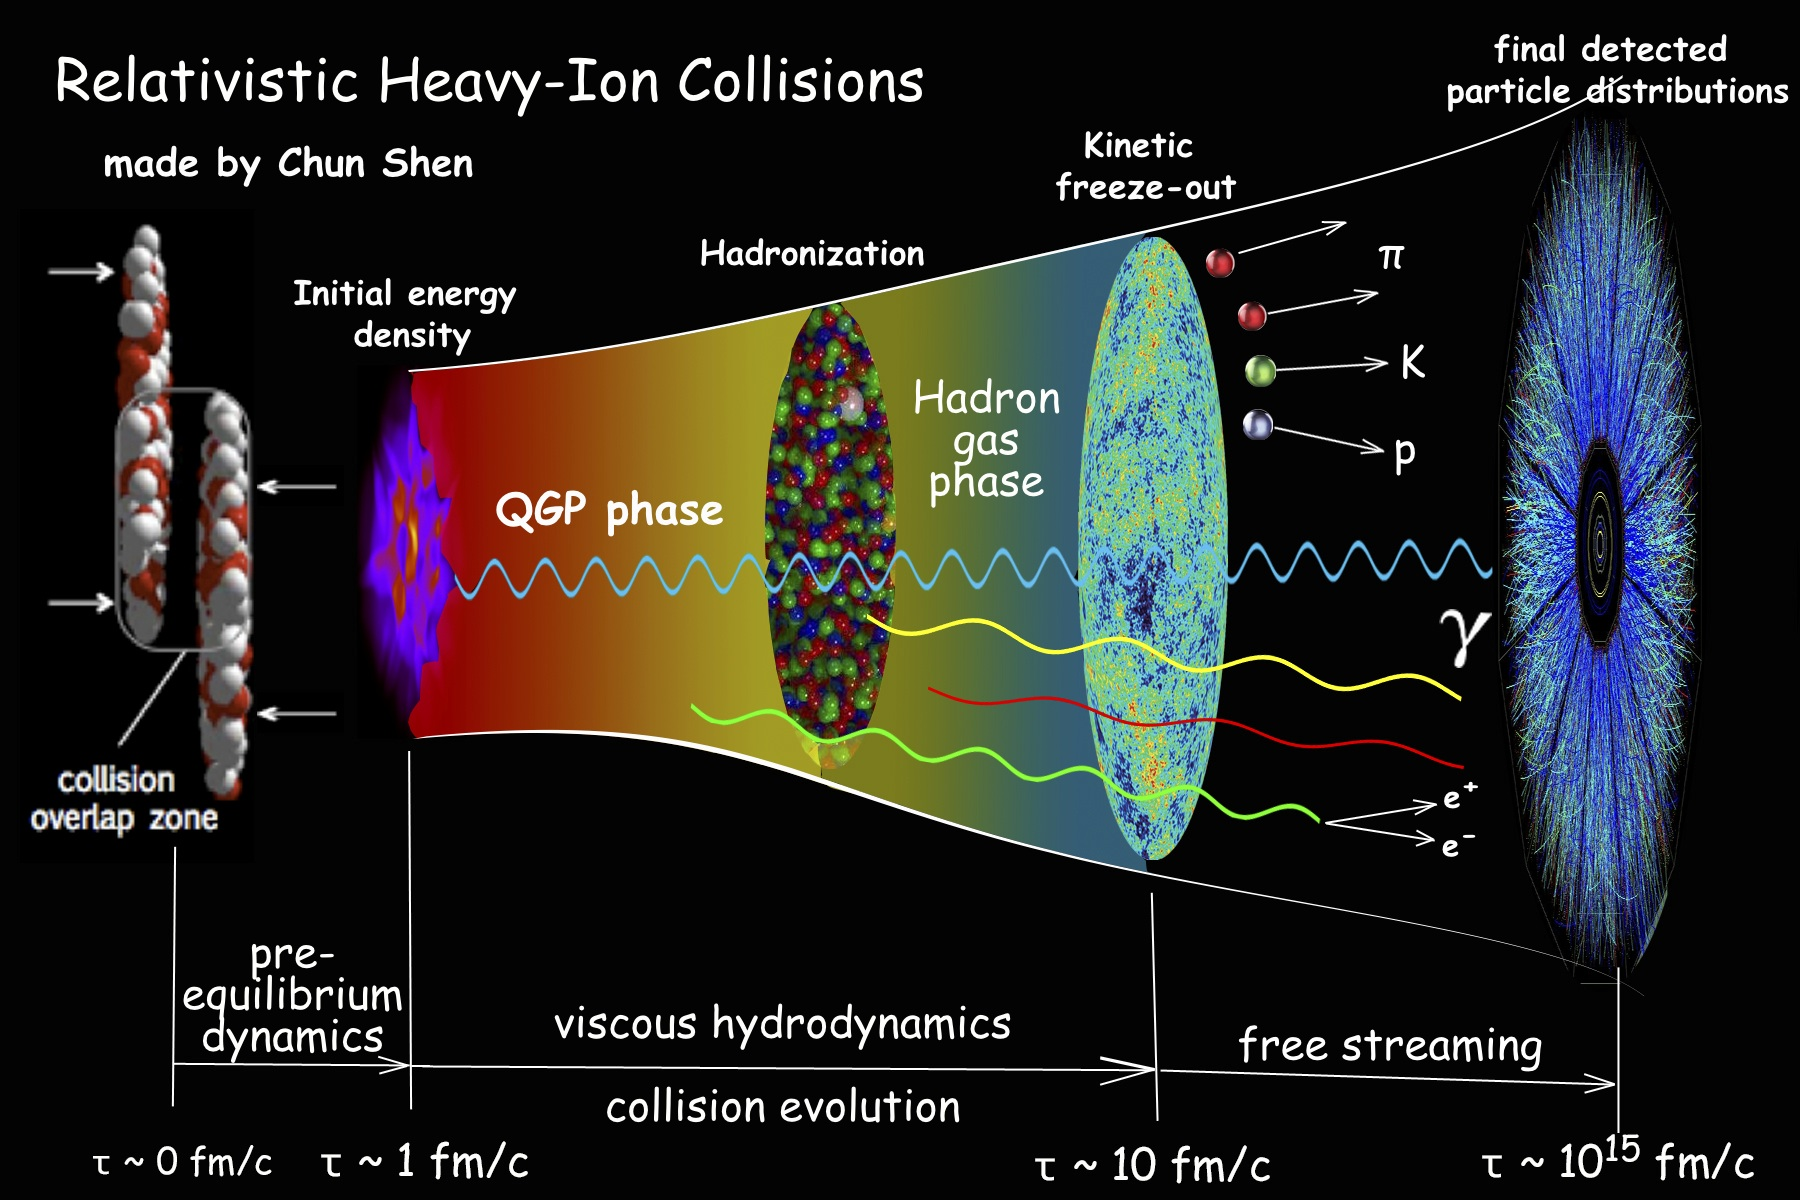 sketch of relativistic heavyion collisions iebevishnu